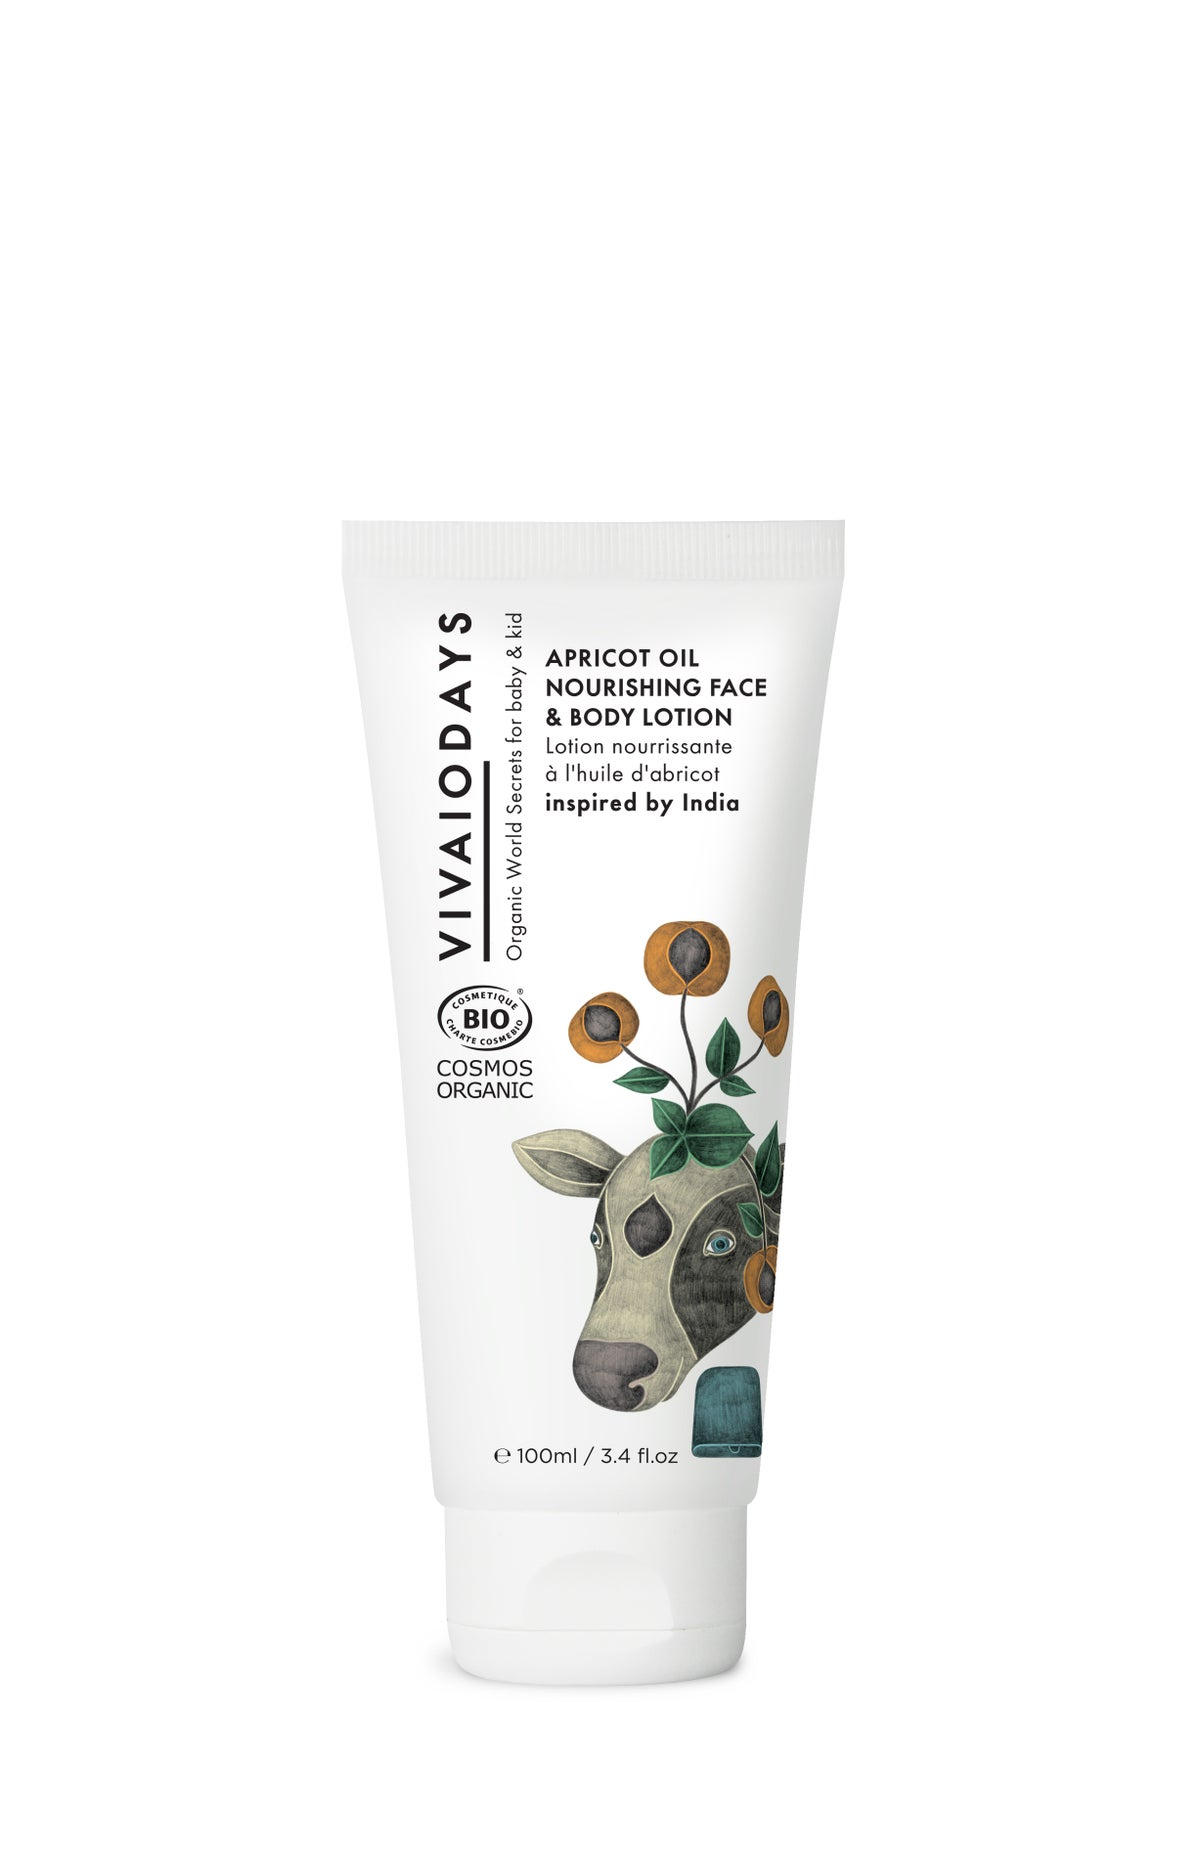 Image of VIVAIODAYS APRICOT OIL NOURISHING FACE & BODY LOTION INSPIRED BY INDIA